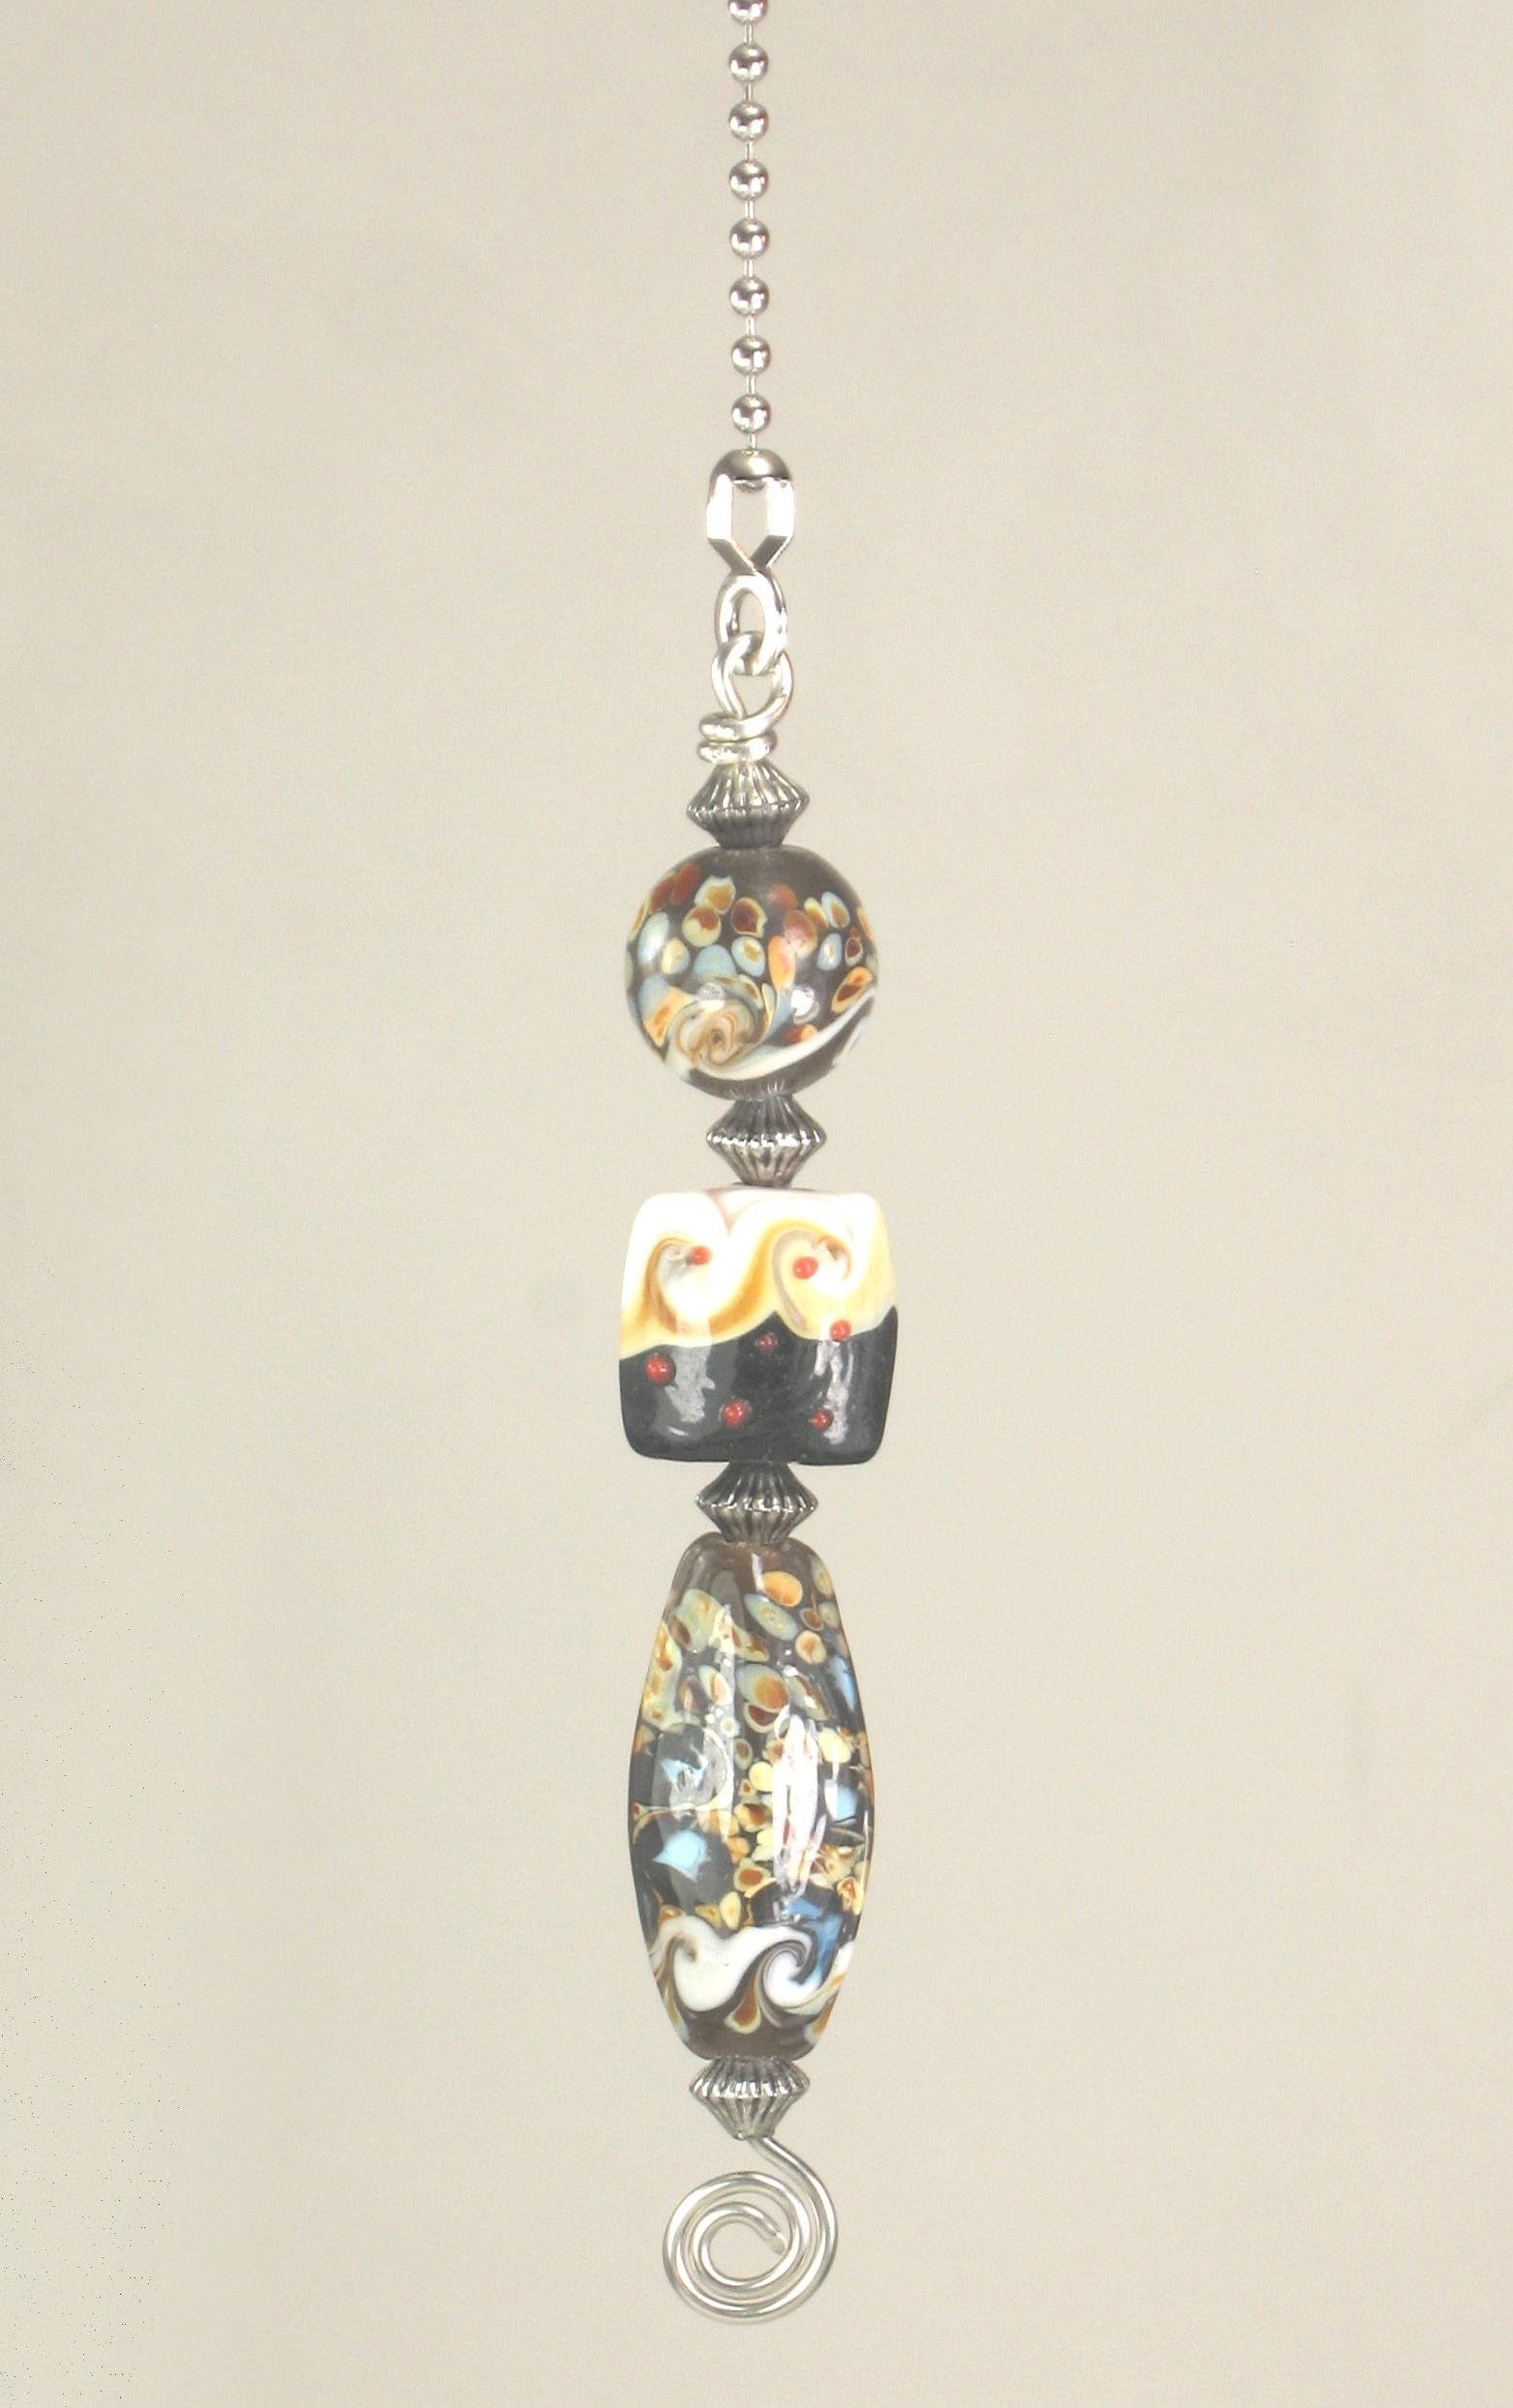 Colorful Glass Confetti Art Beads with White Waves Ceiling Fan Pull Chain